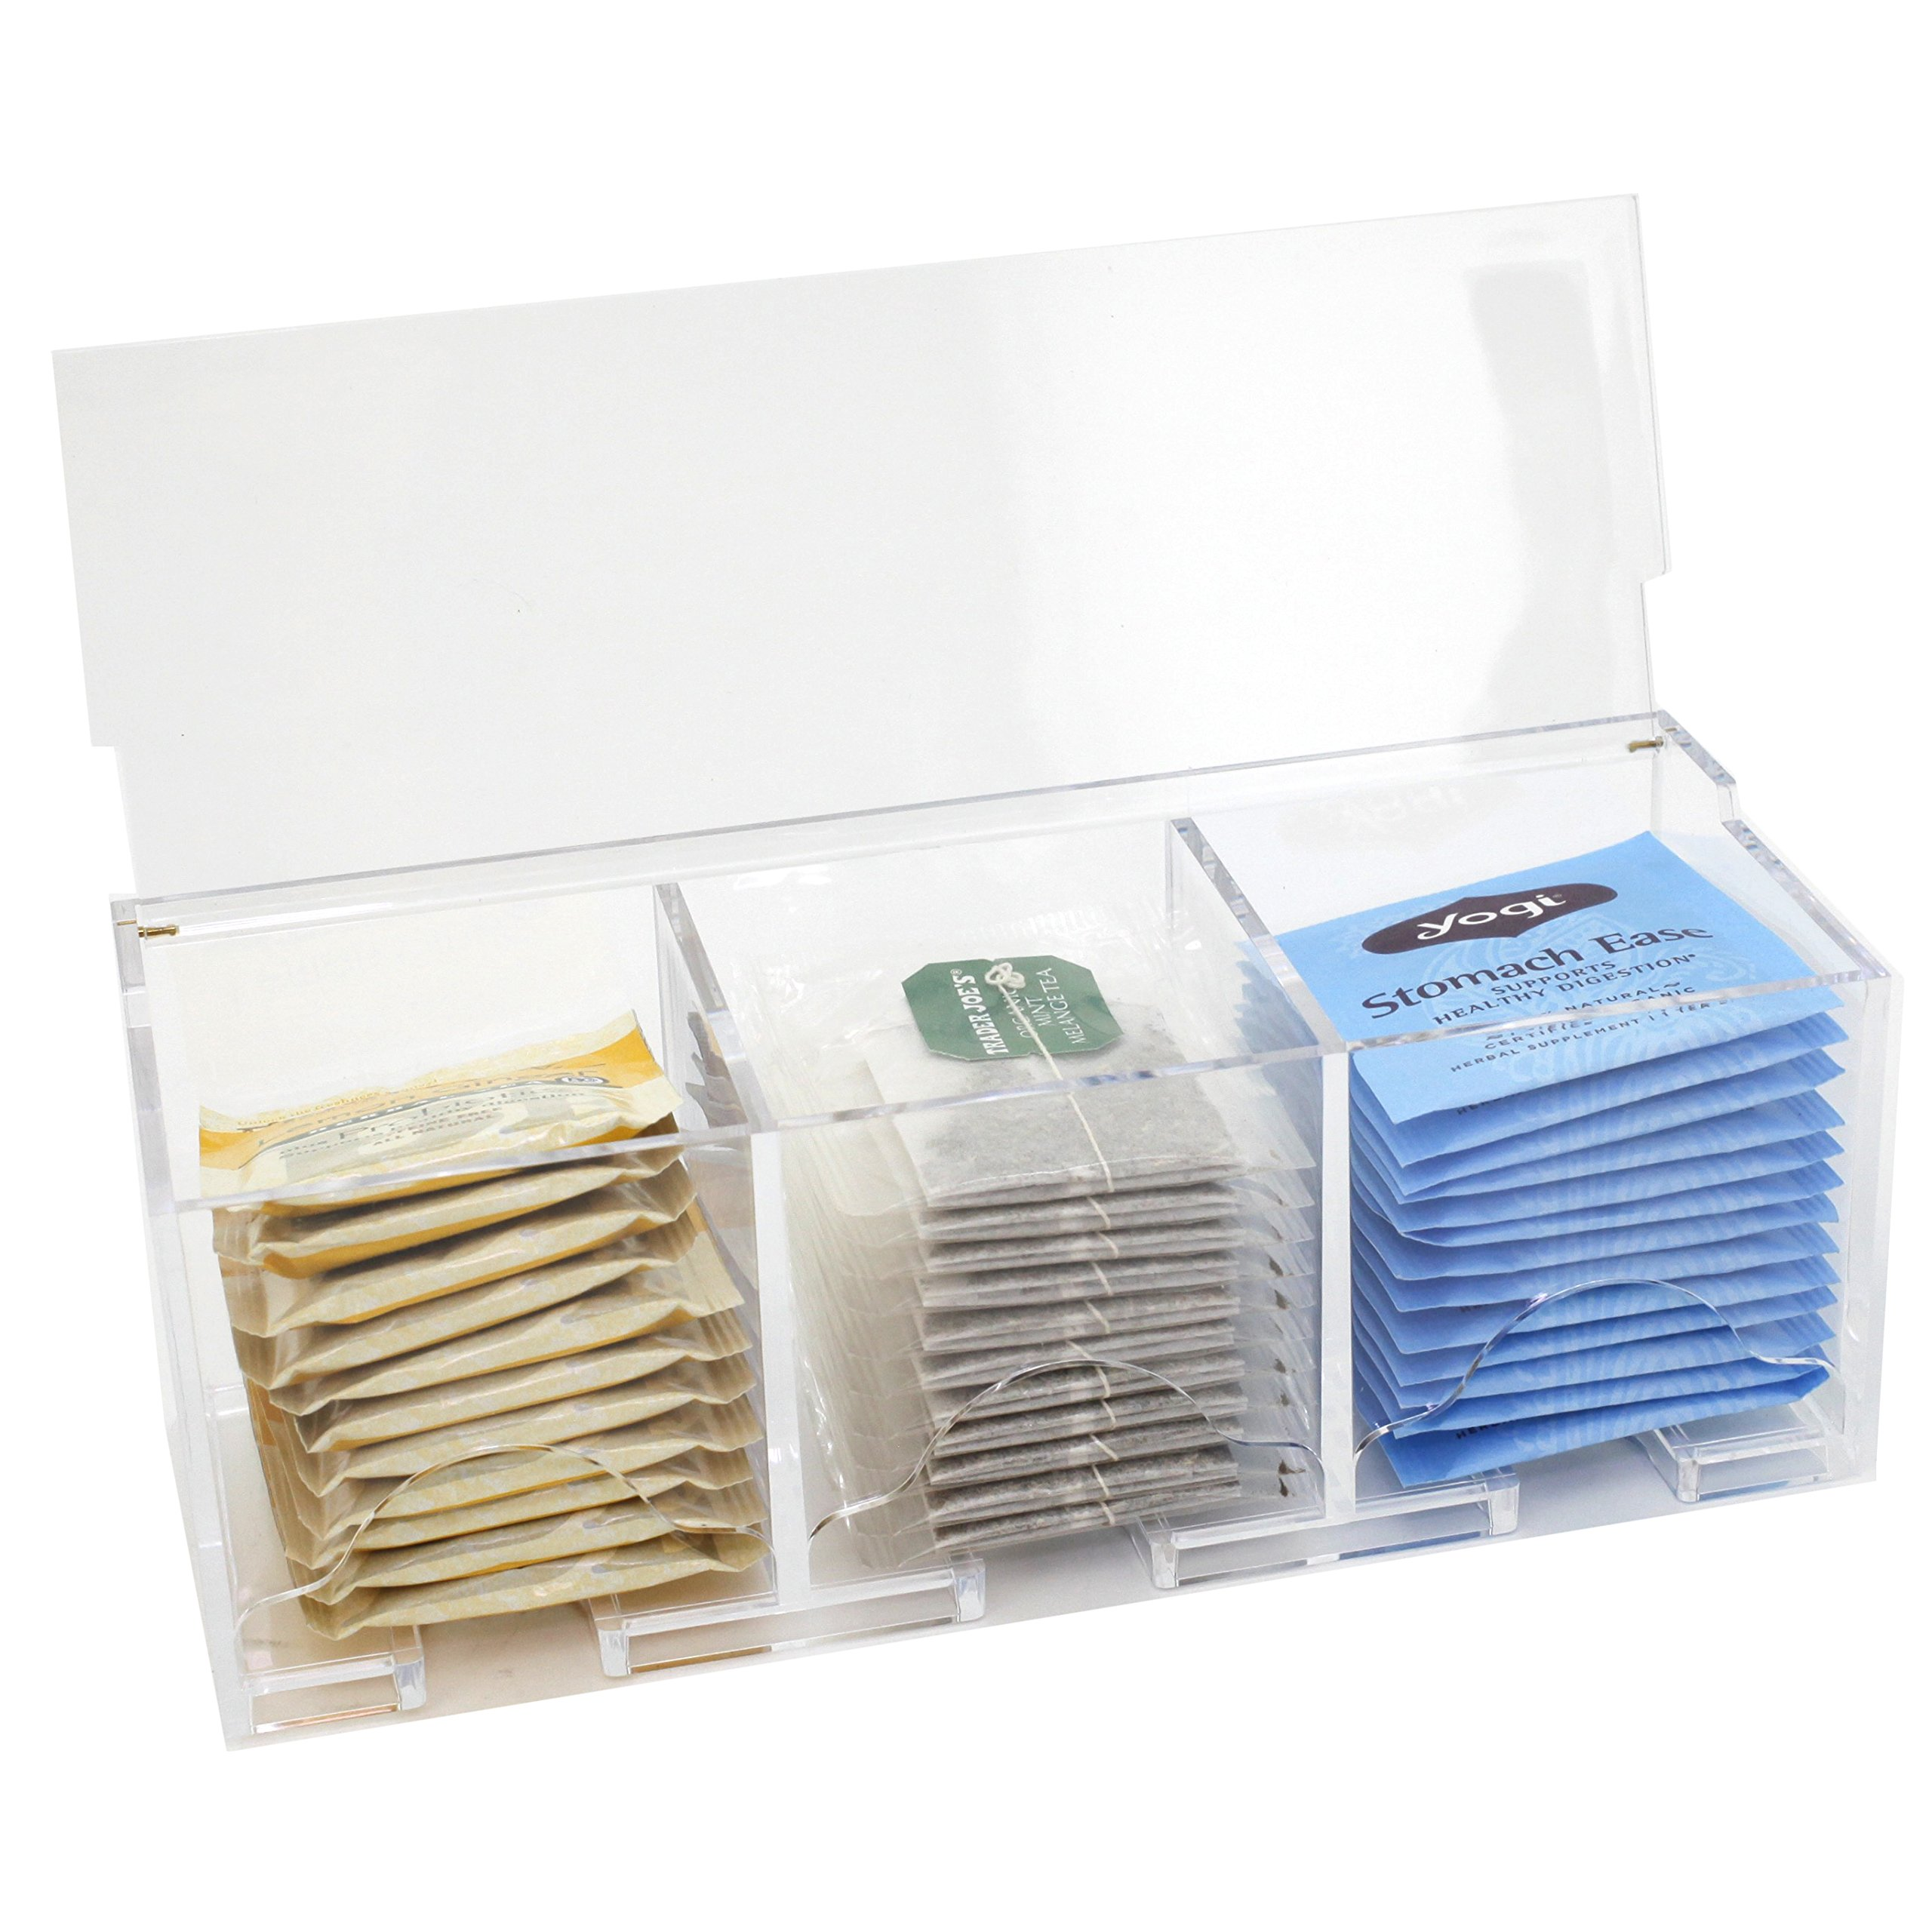 Paylak CNT395 Tea Box Contemporary Compact Acrylic Holder Tea Bags